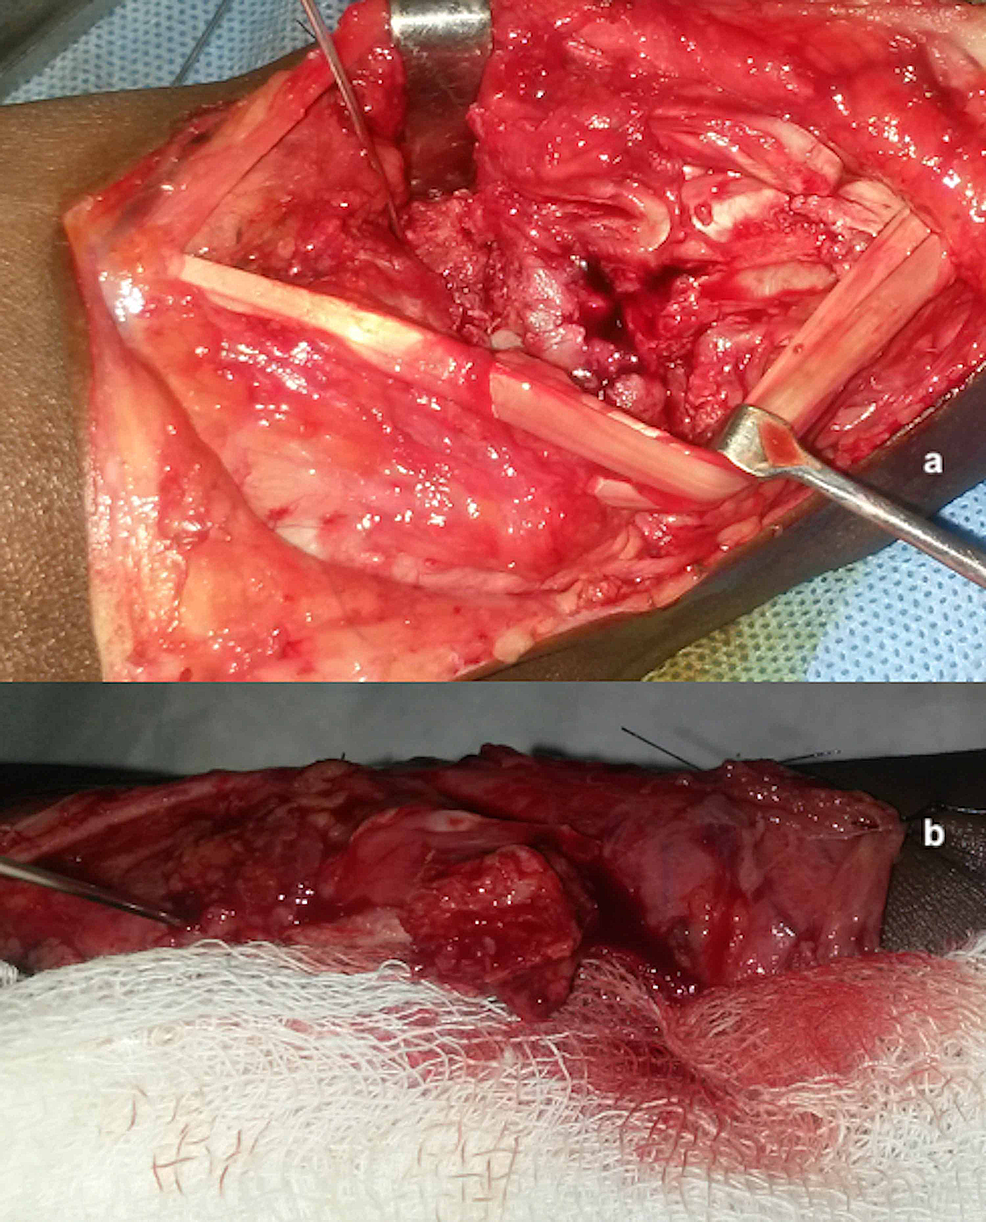 Intraoperative-pictures